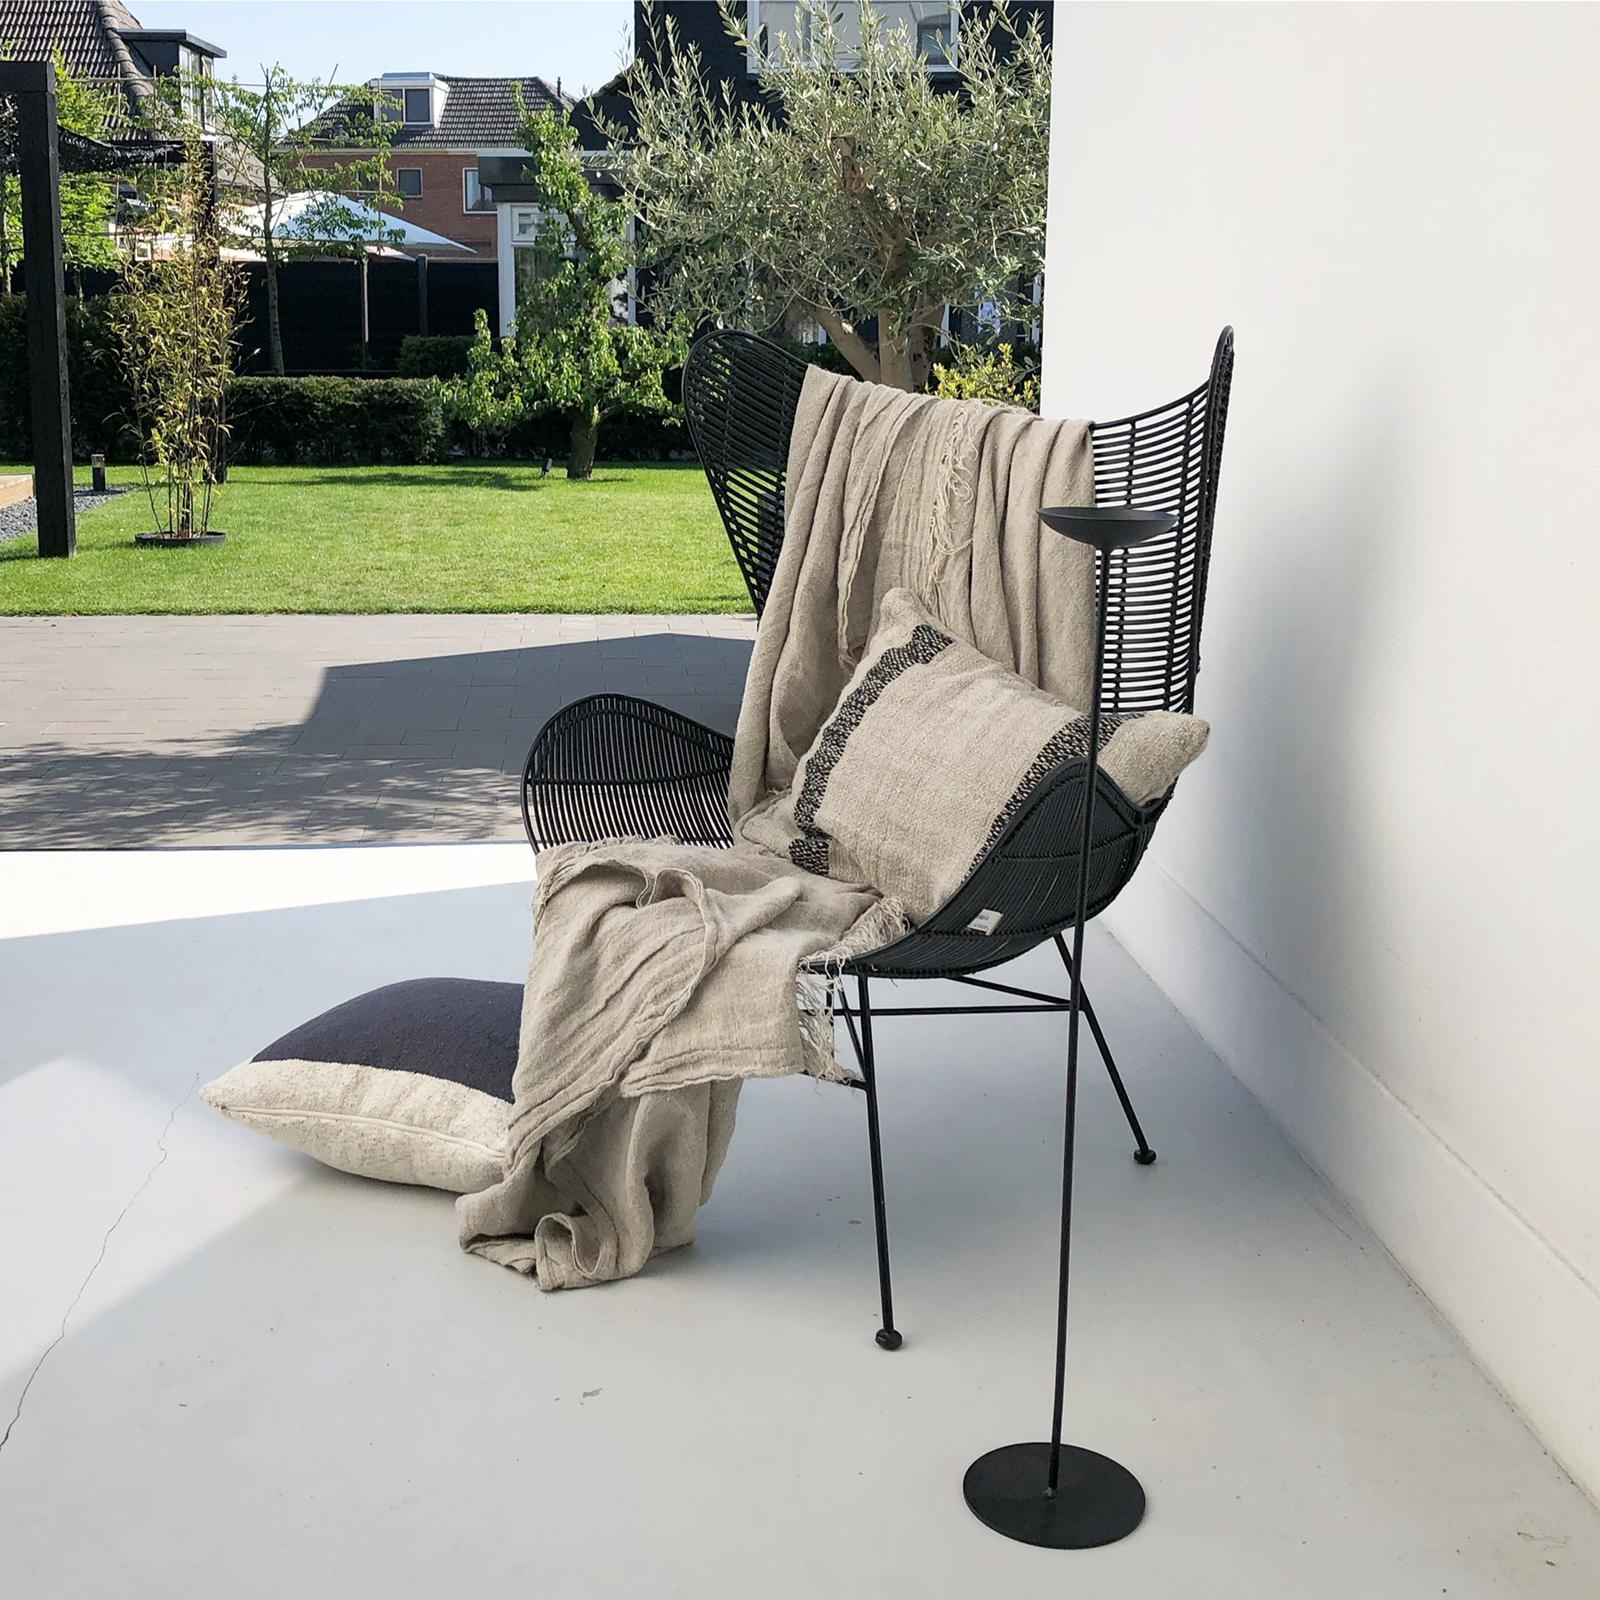 Stoel outdoor egg chair black-4